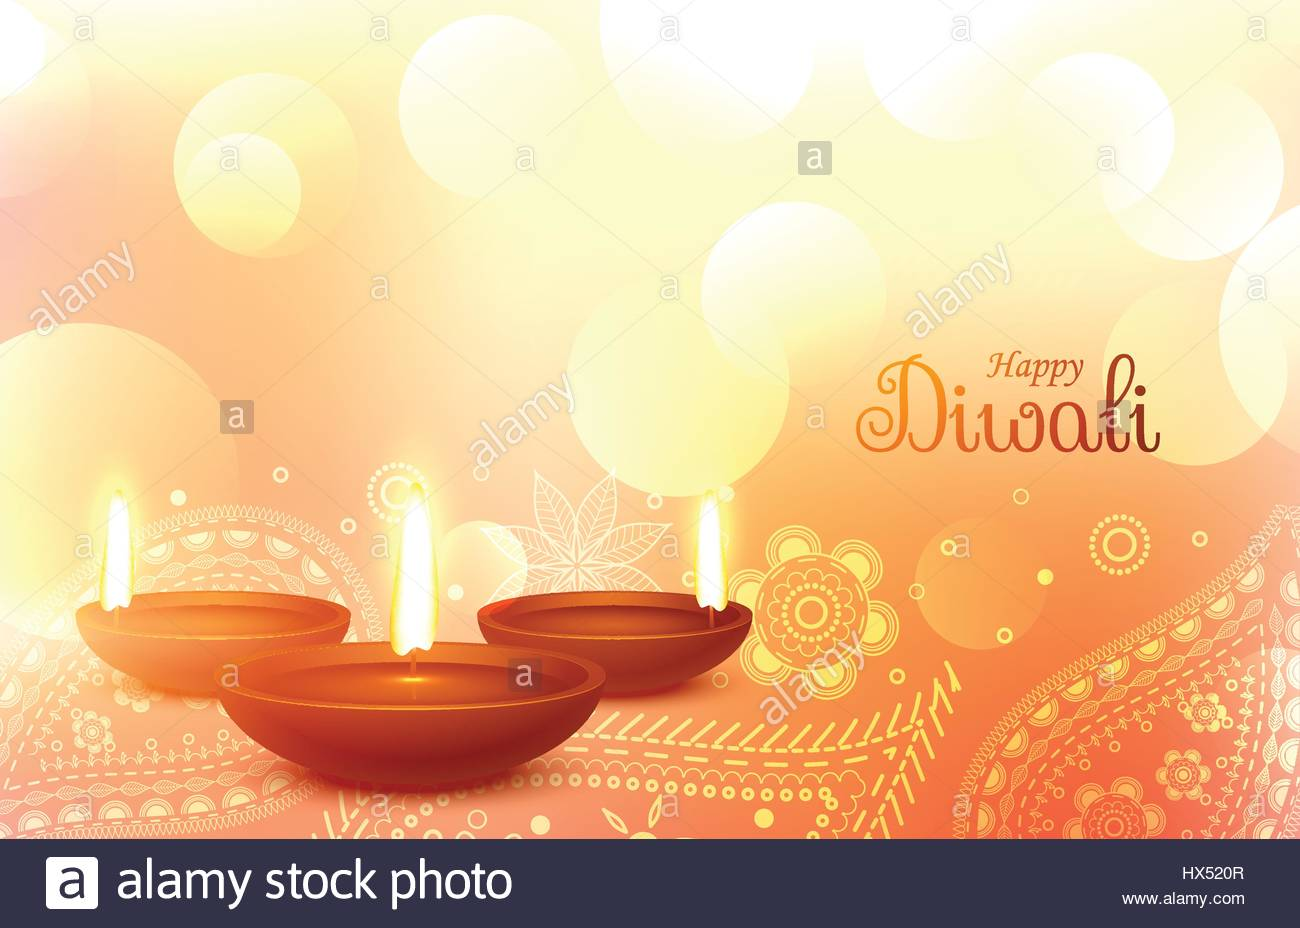 beautiful diwali wallpaper with paisley art stock vector art